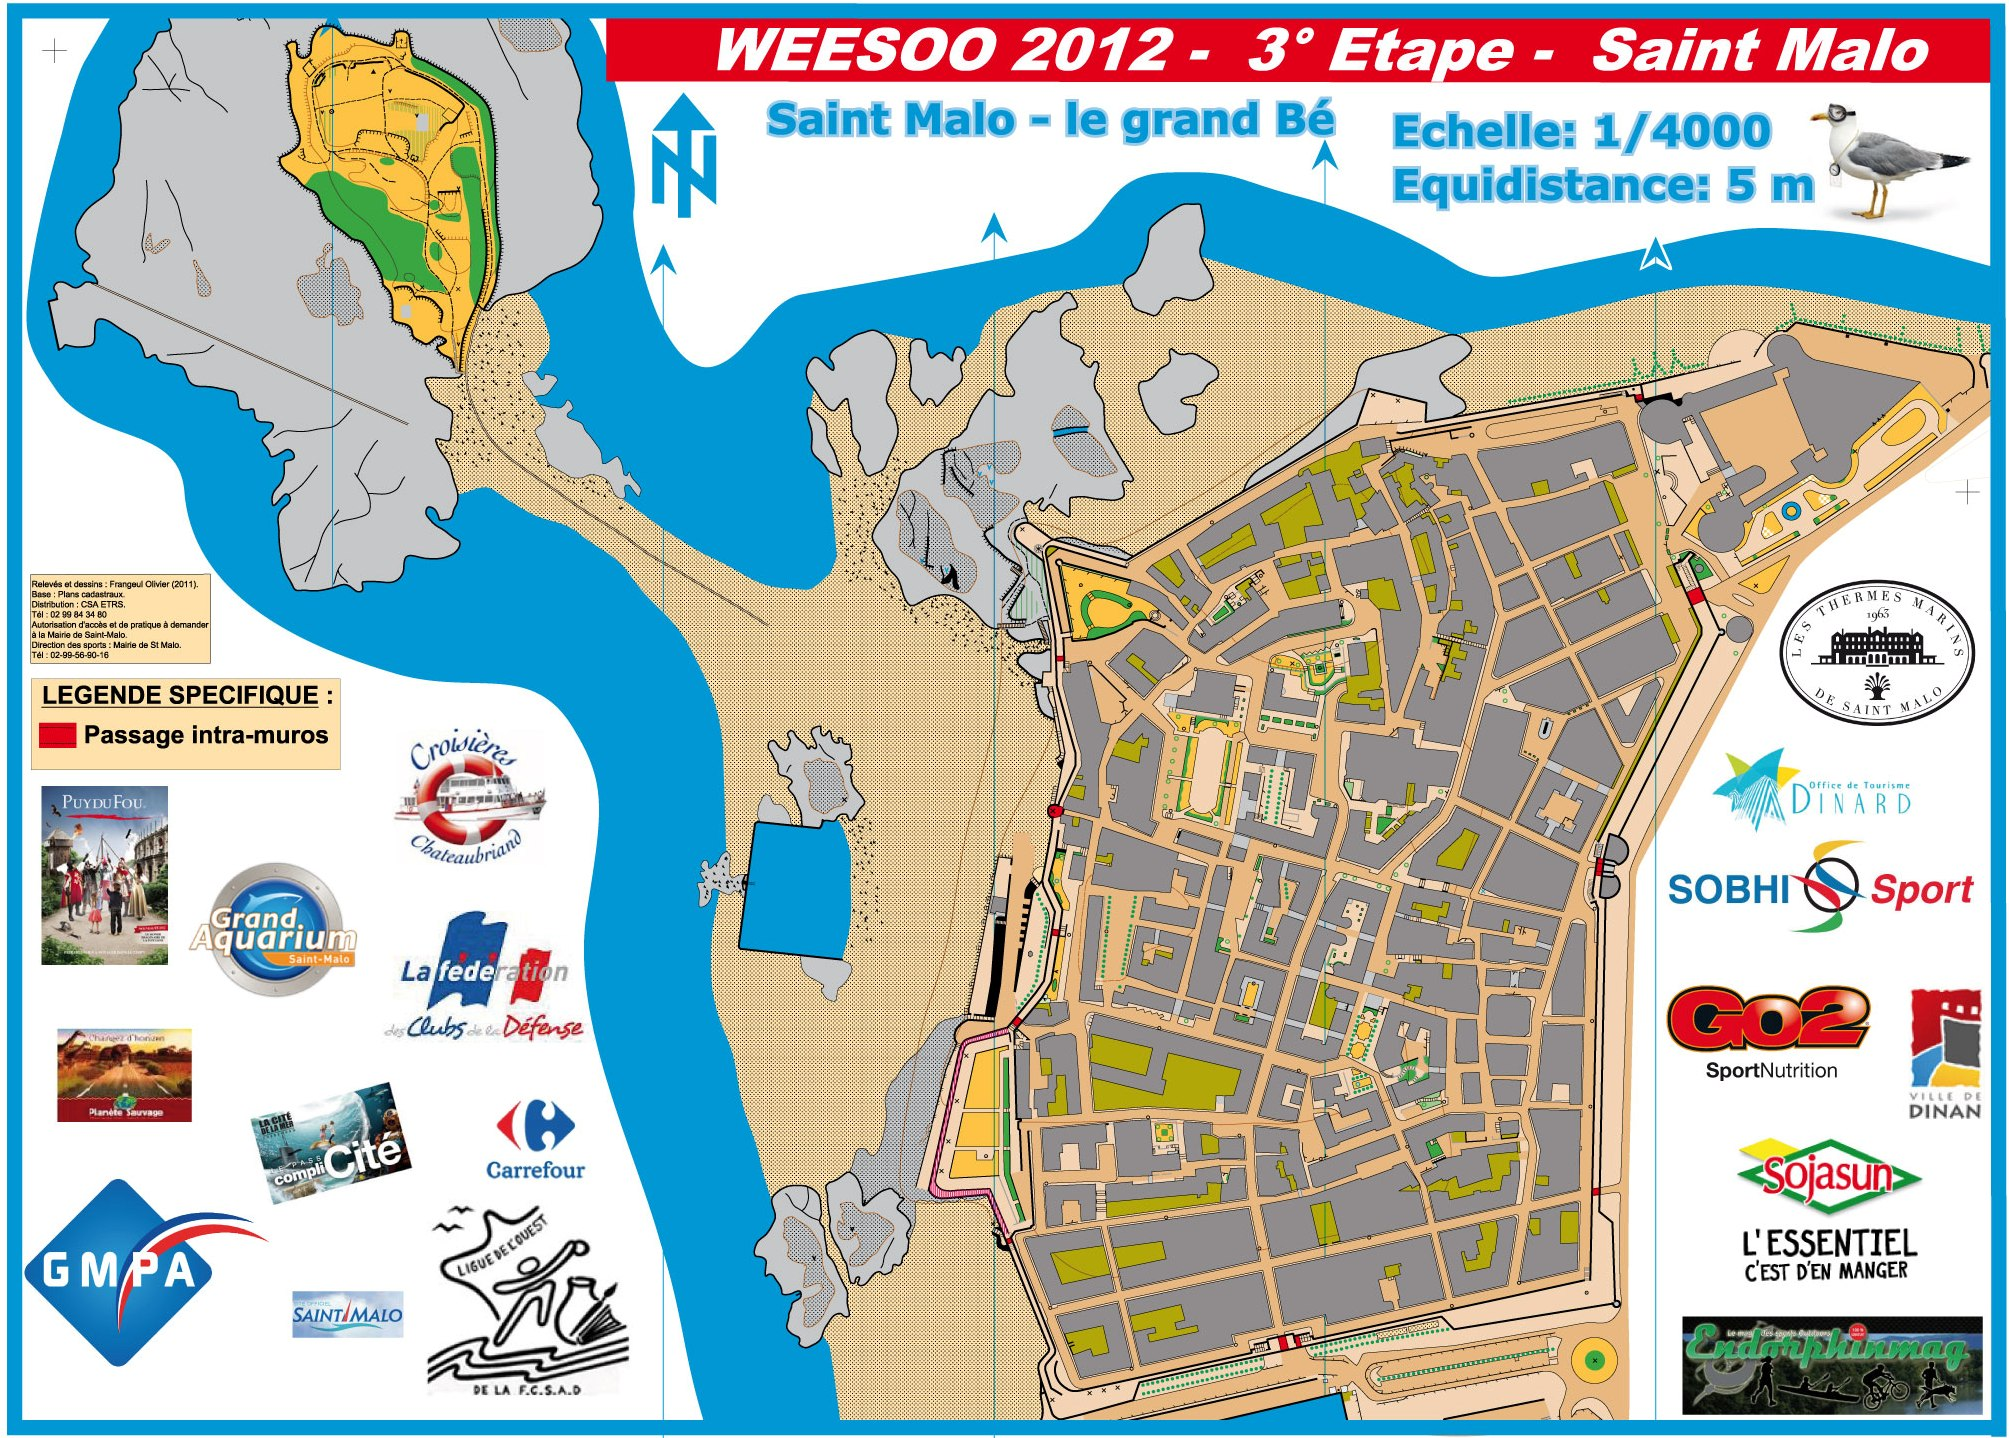 WEESOO ST MALO E3 March 4th 2012 Orienteering Map from